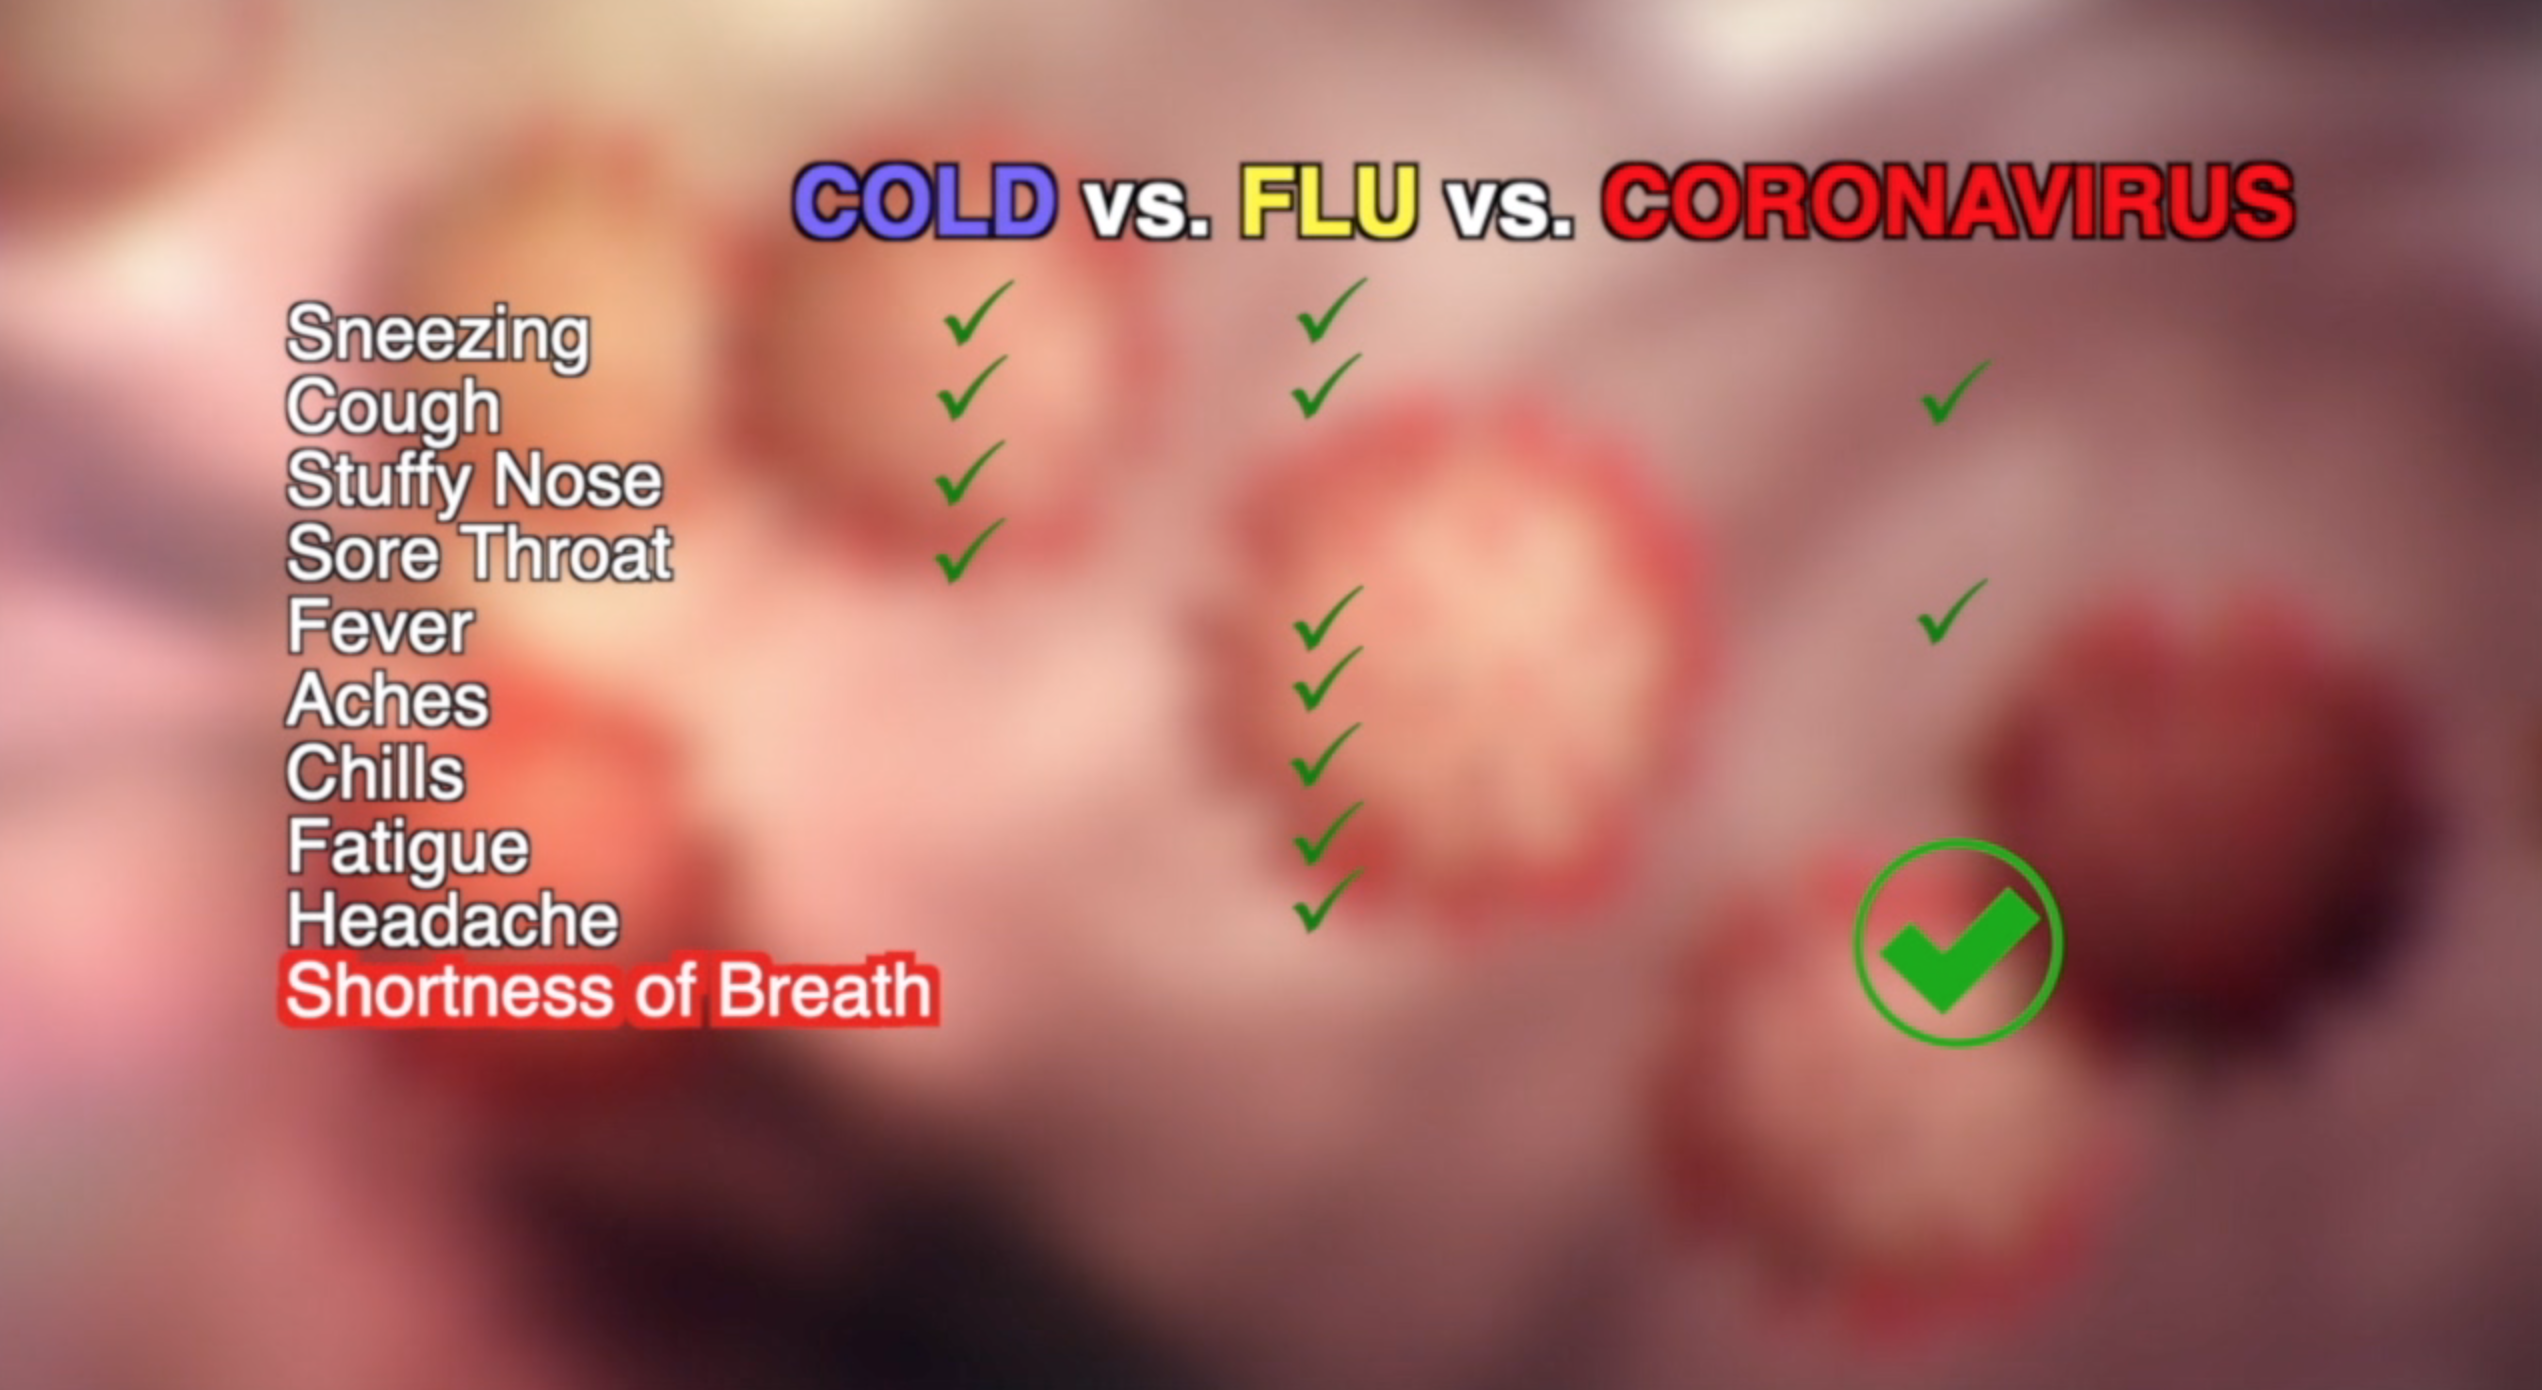 How is Coronavirus different from flu and common cold?